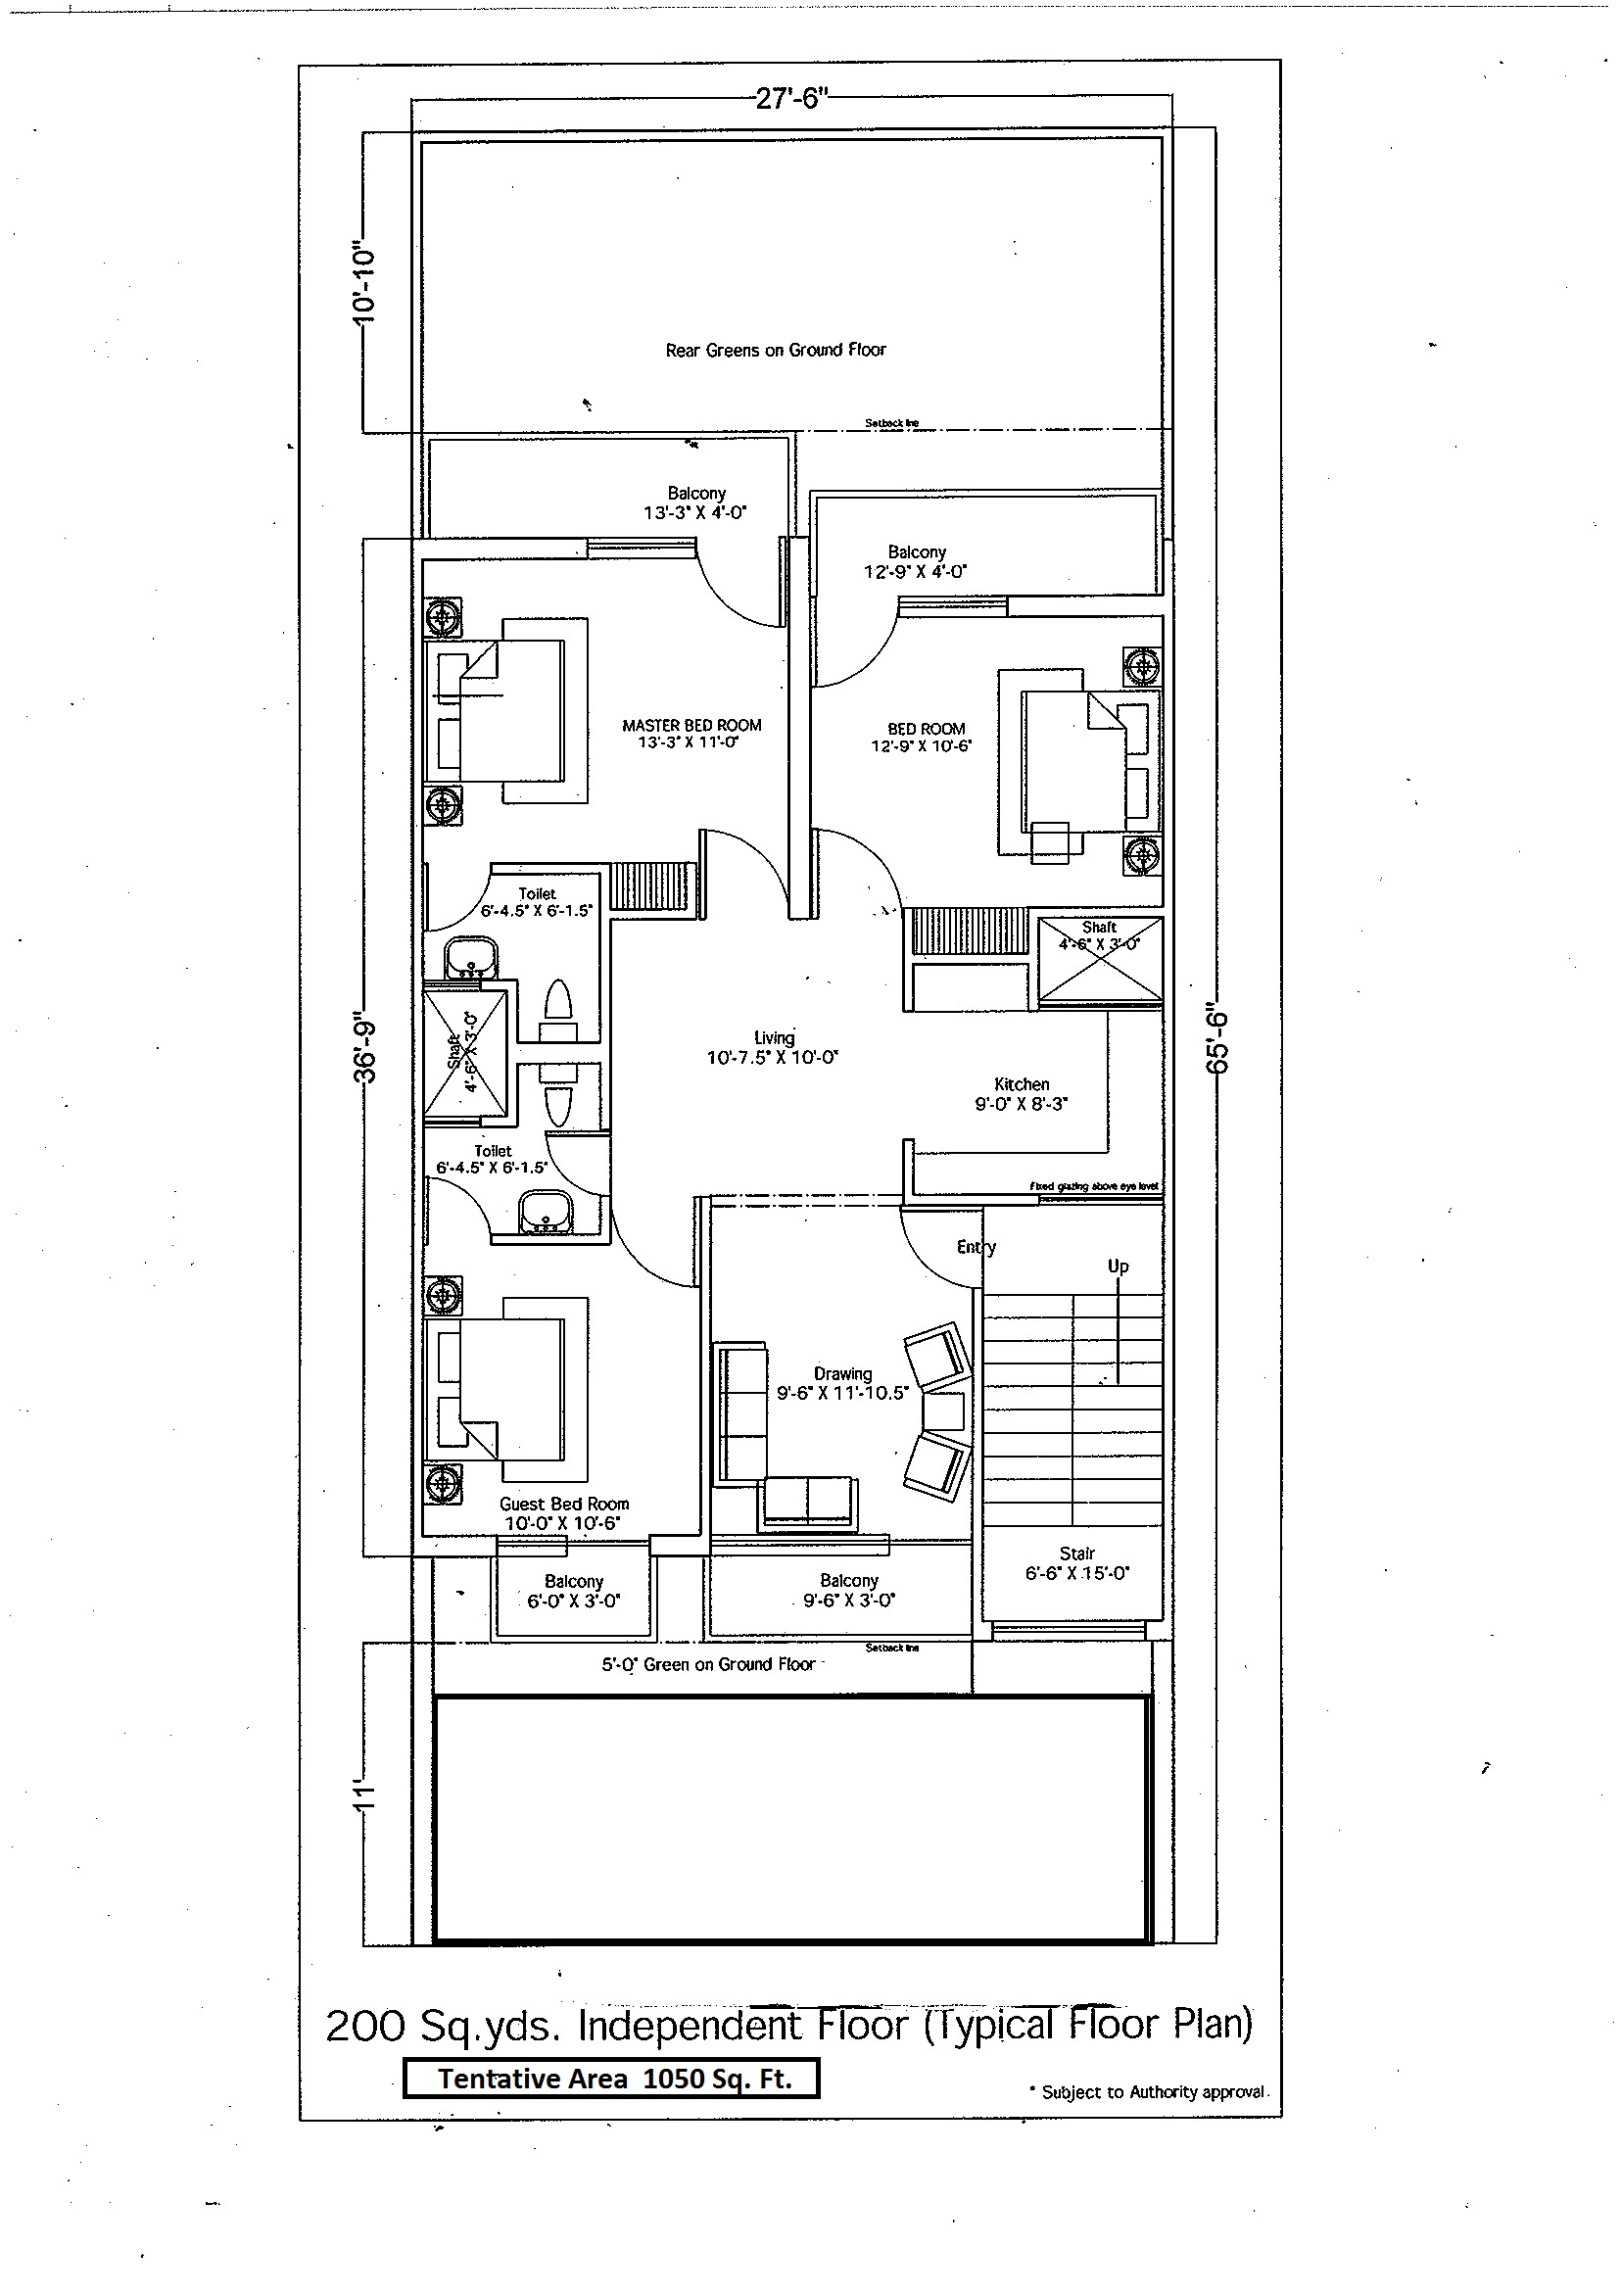 Floor Plan wave